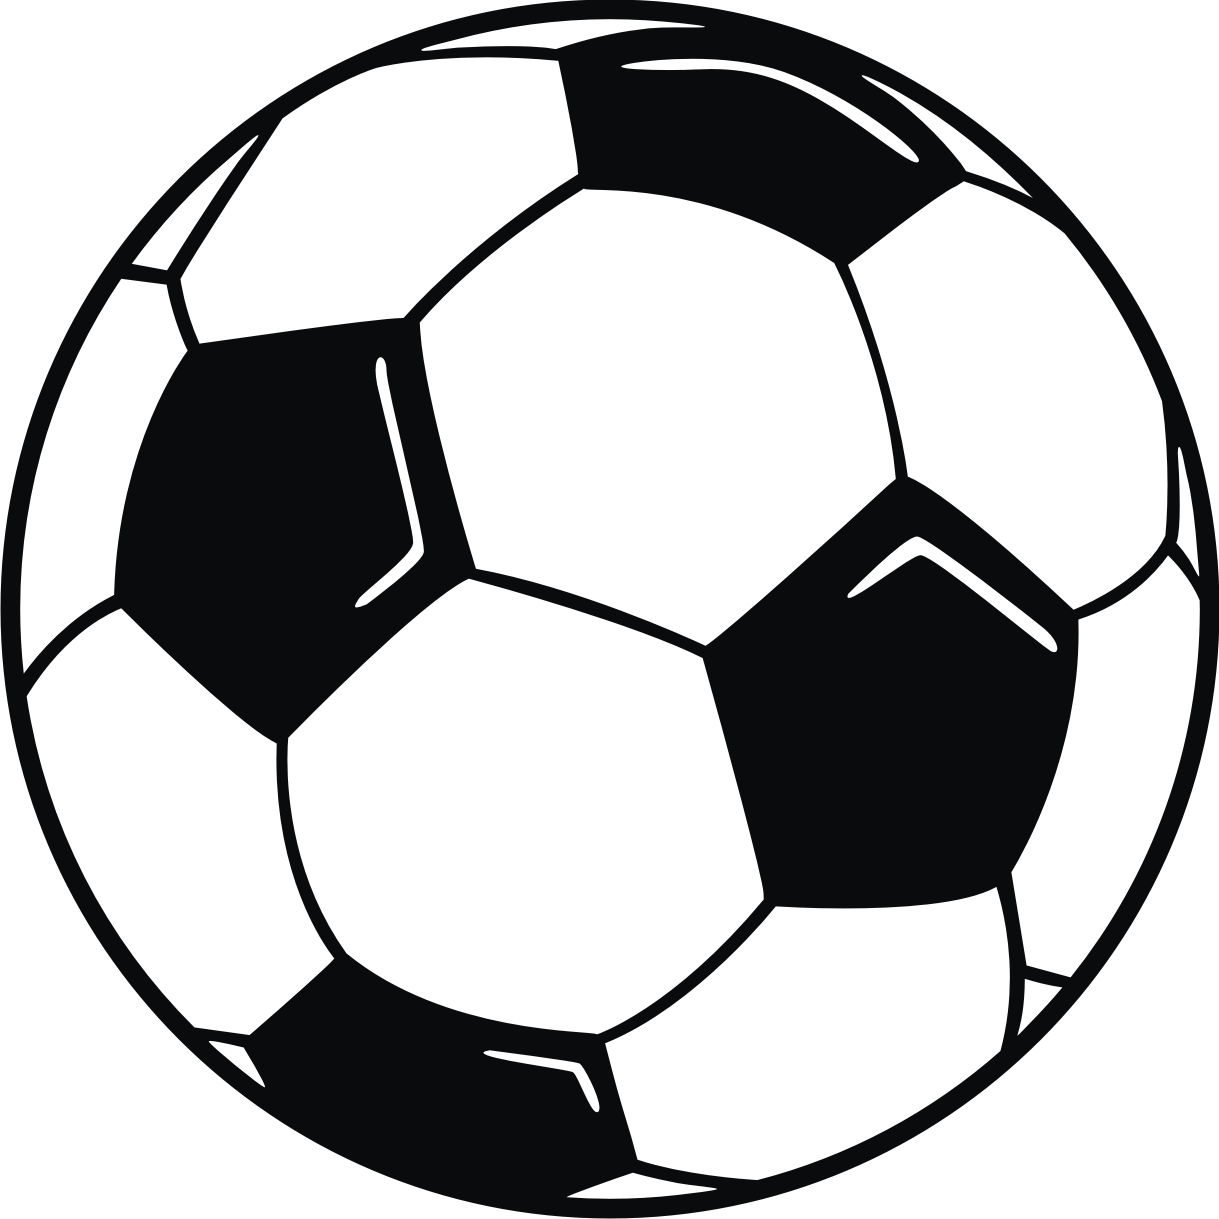 Soccer ball png cool. Clip art with hi